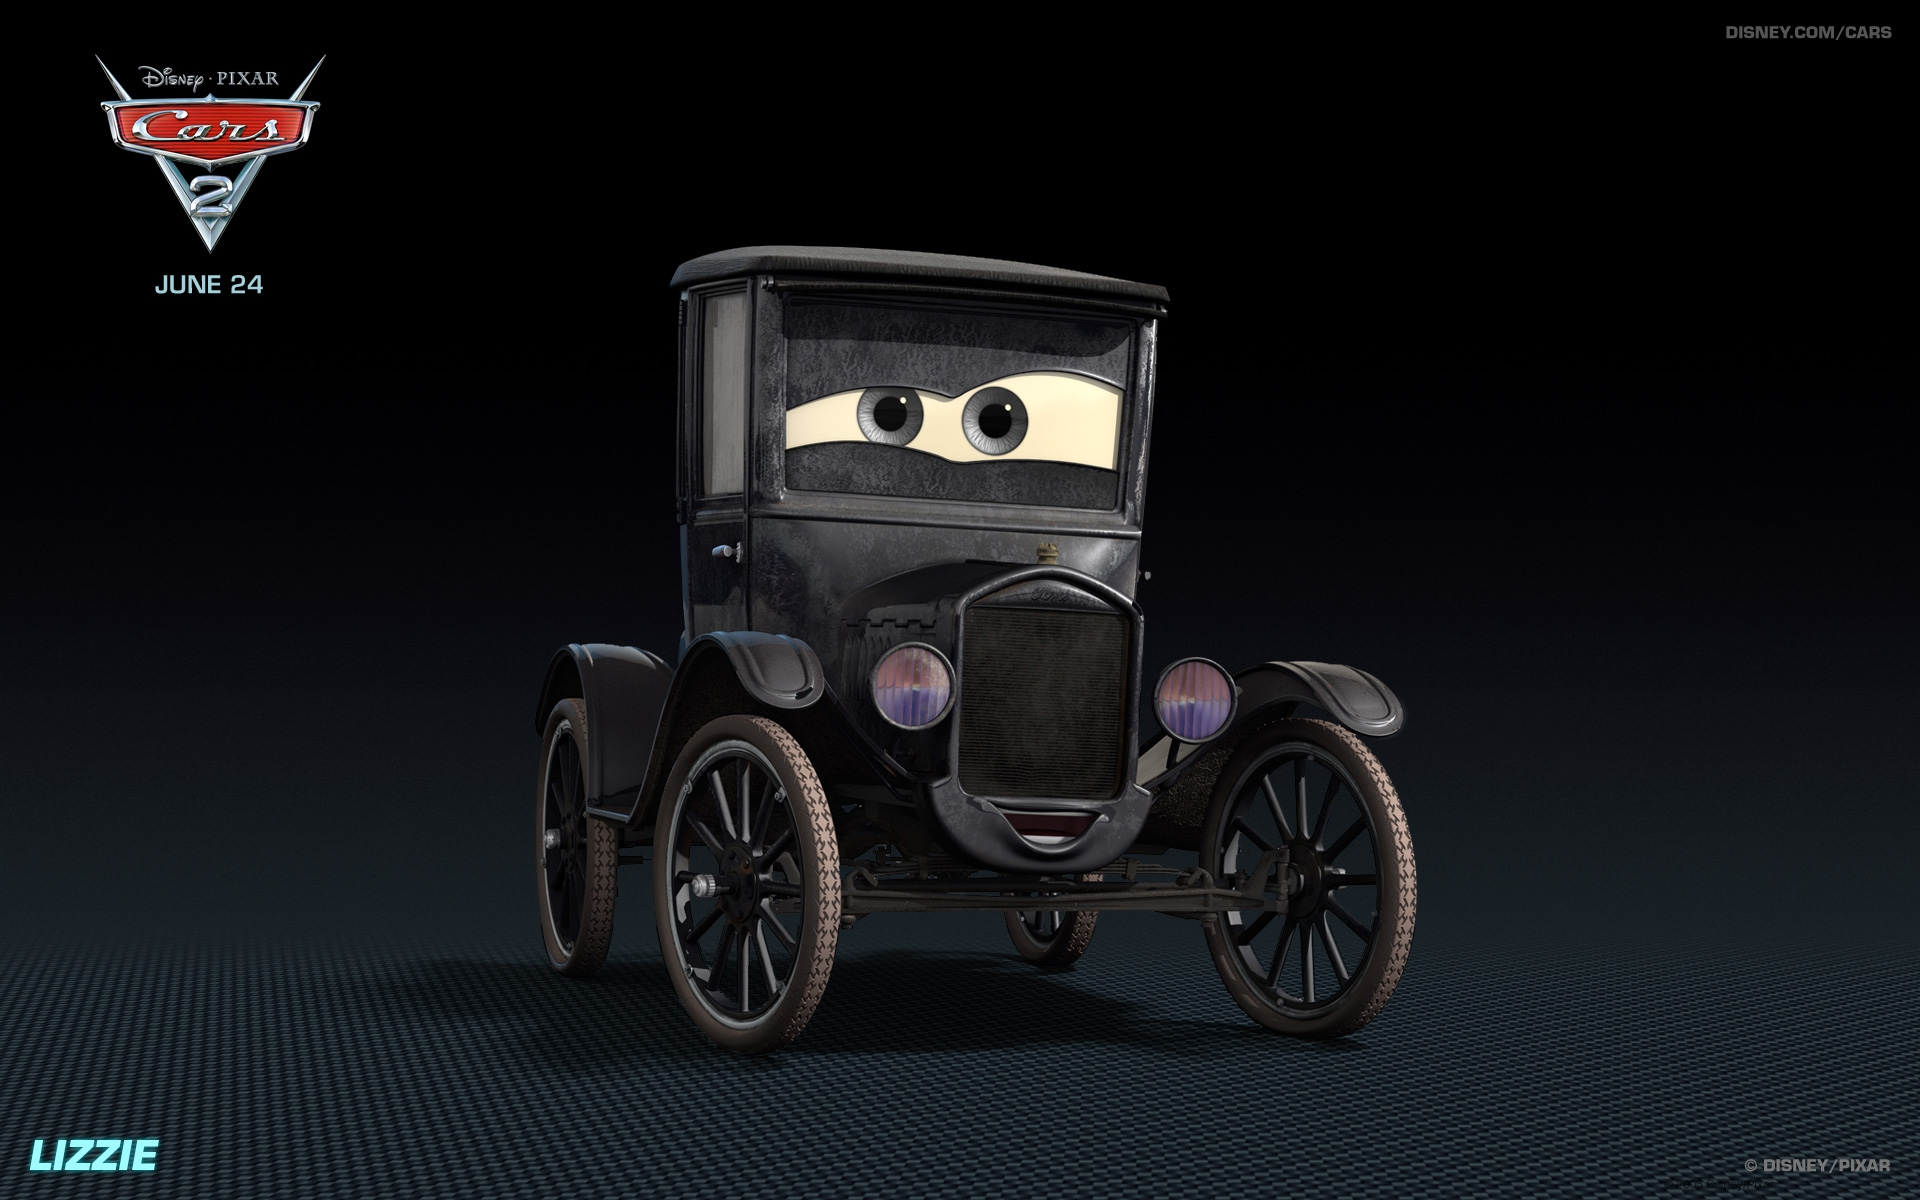 lizzie disney pixar cars 2 free hd wallpaper